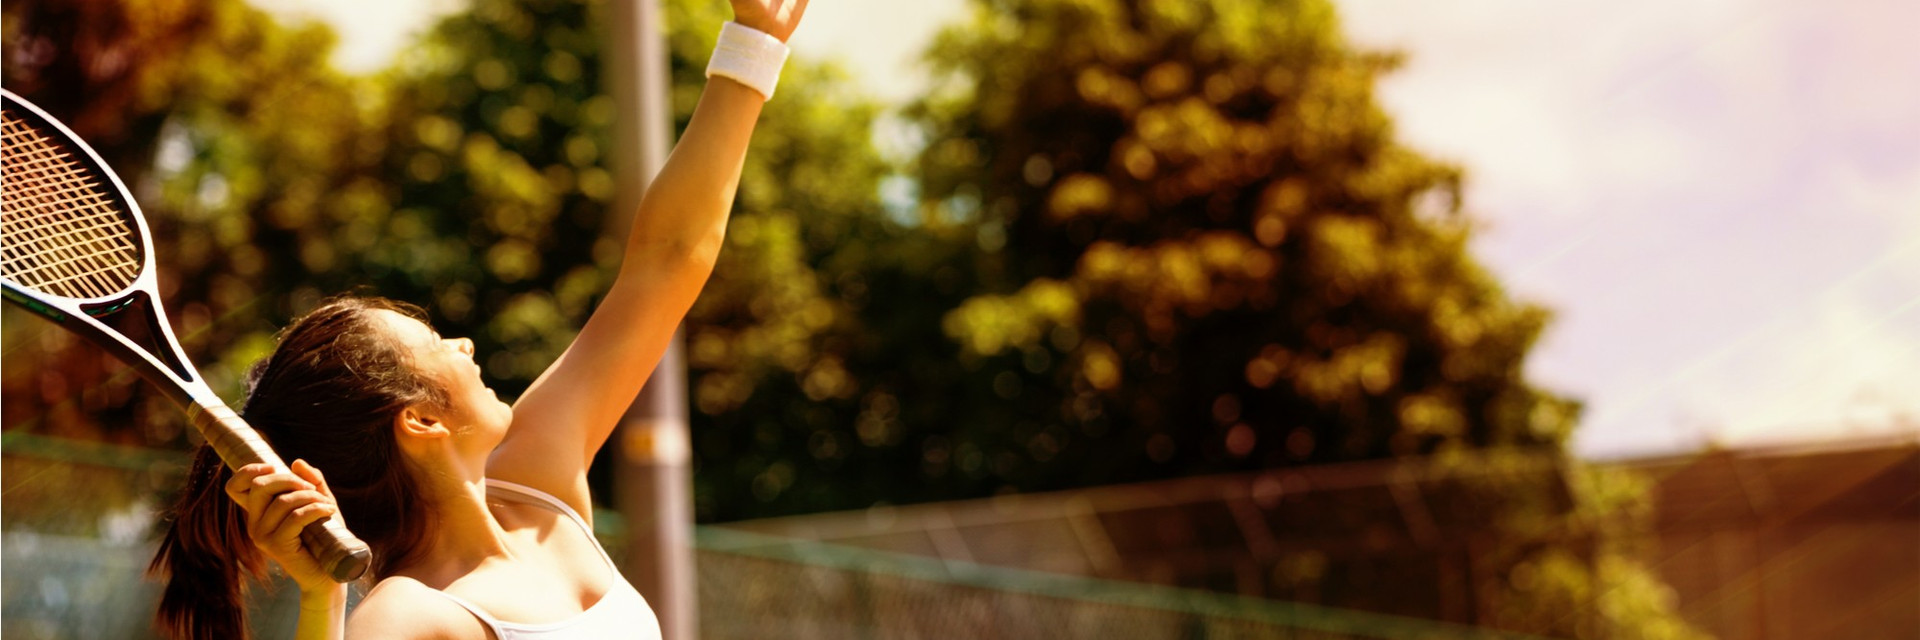 Tennis-Elbow-Symptoms